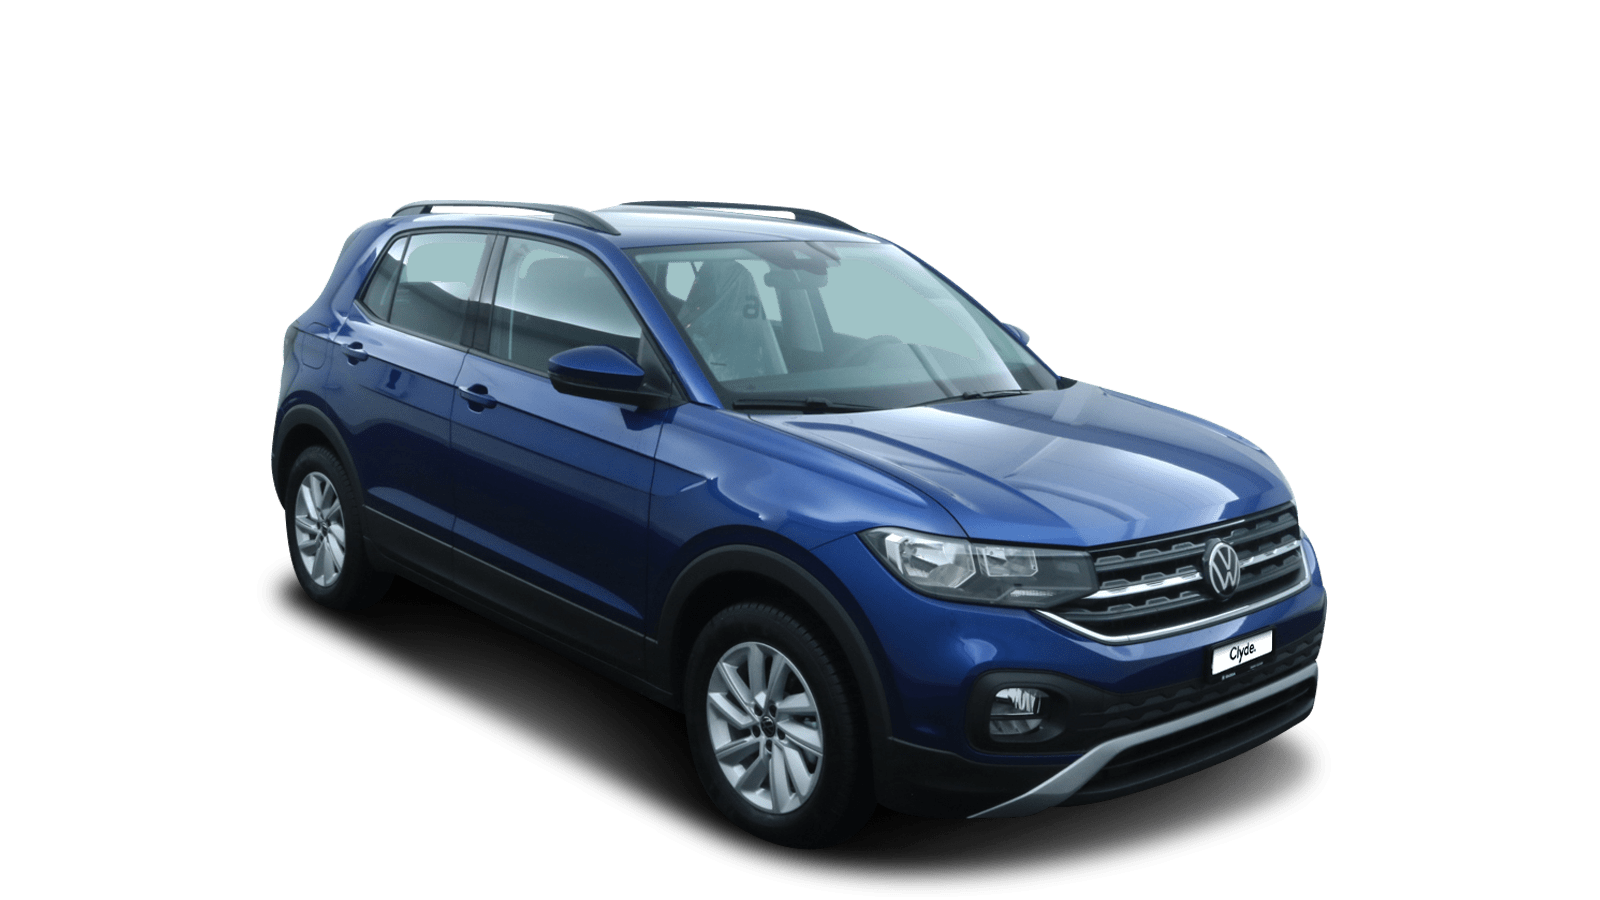 VW T-Cross Blau front - Clyde Auto-Abo